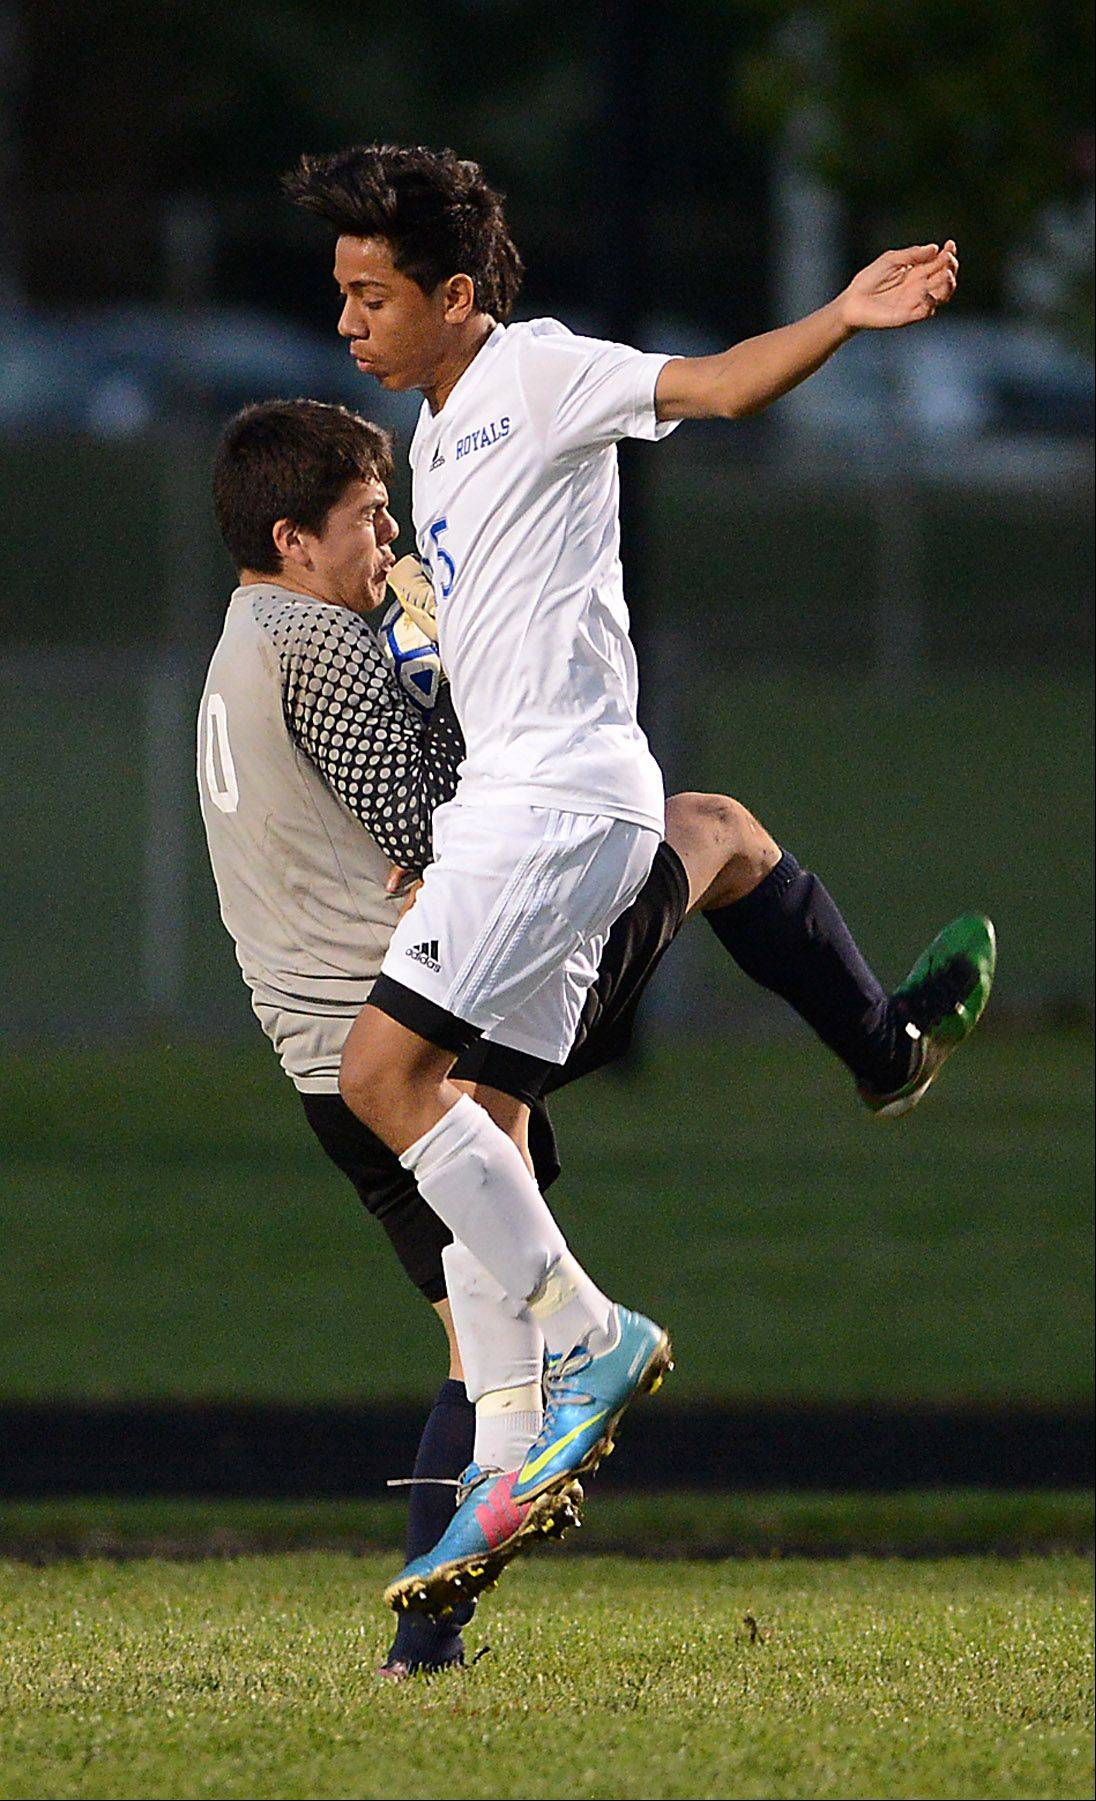 Larkin's Ricardo Nava collides with Elgin goalkeeper Flavio Jaimes during Tuesday's game at Memorial Field in Elgin.